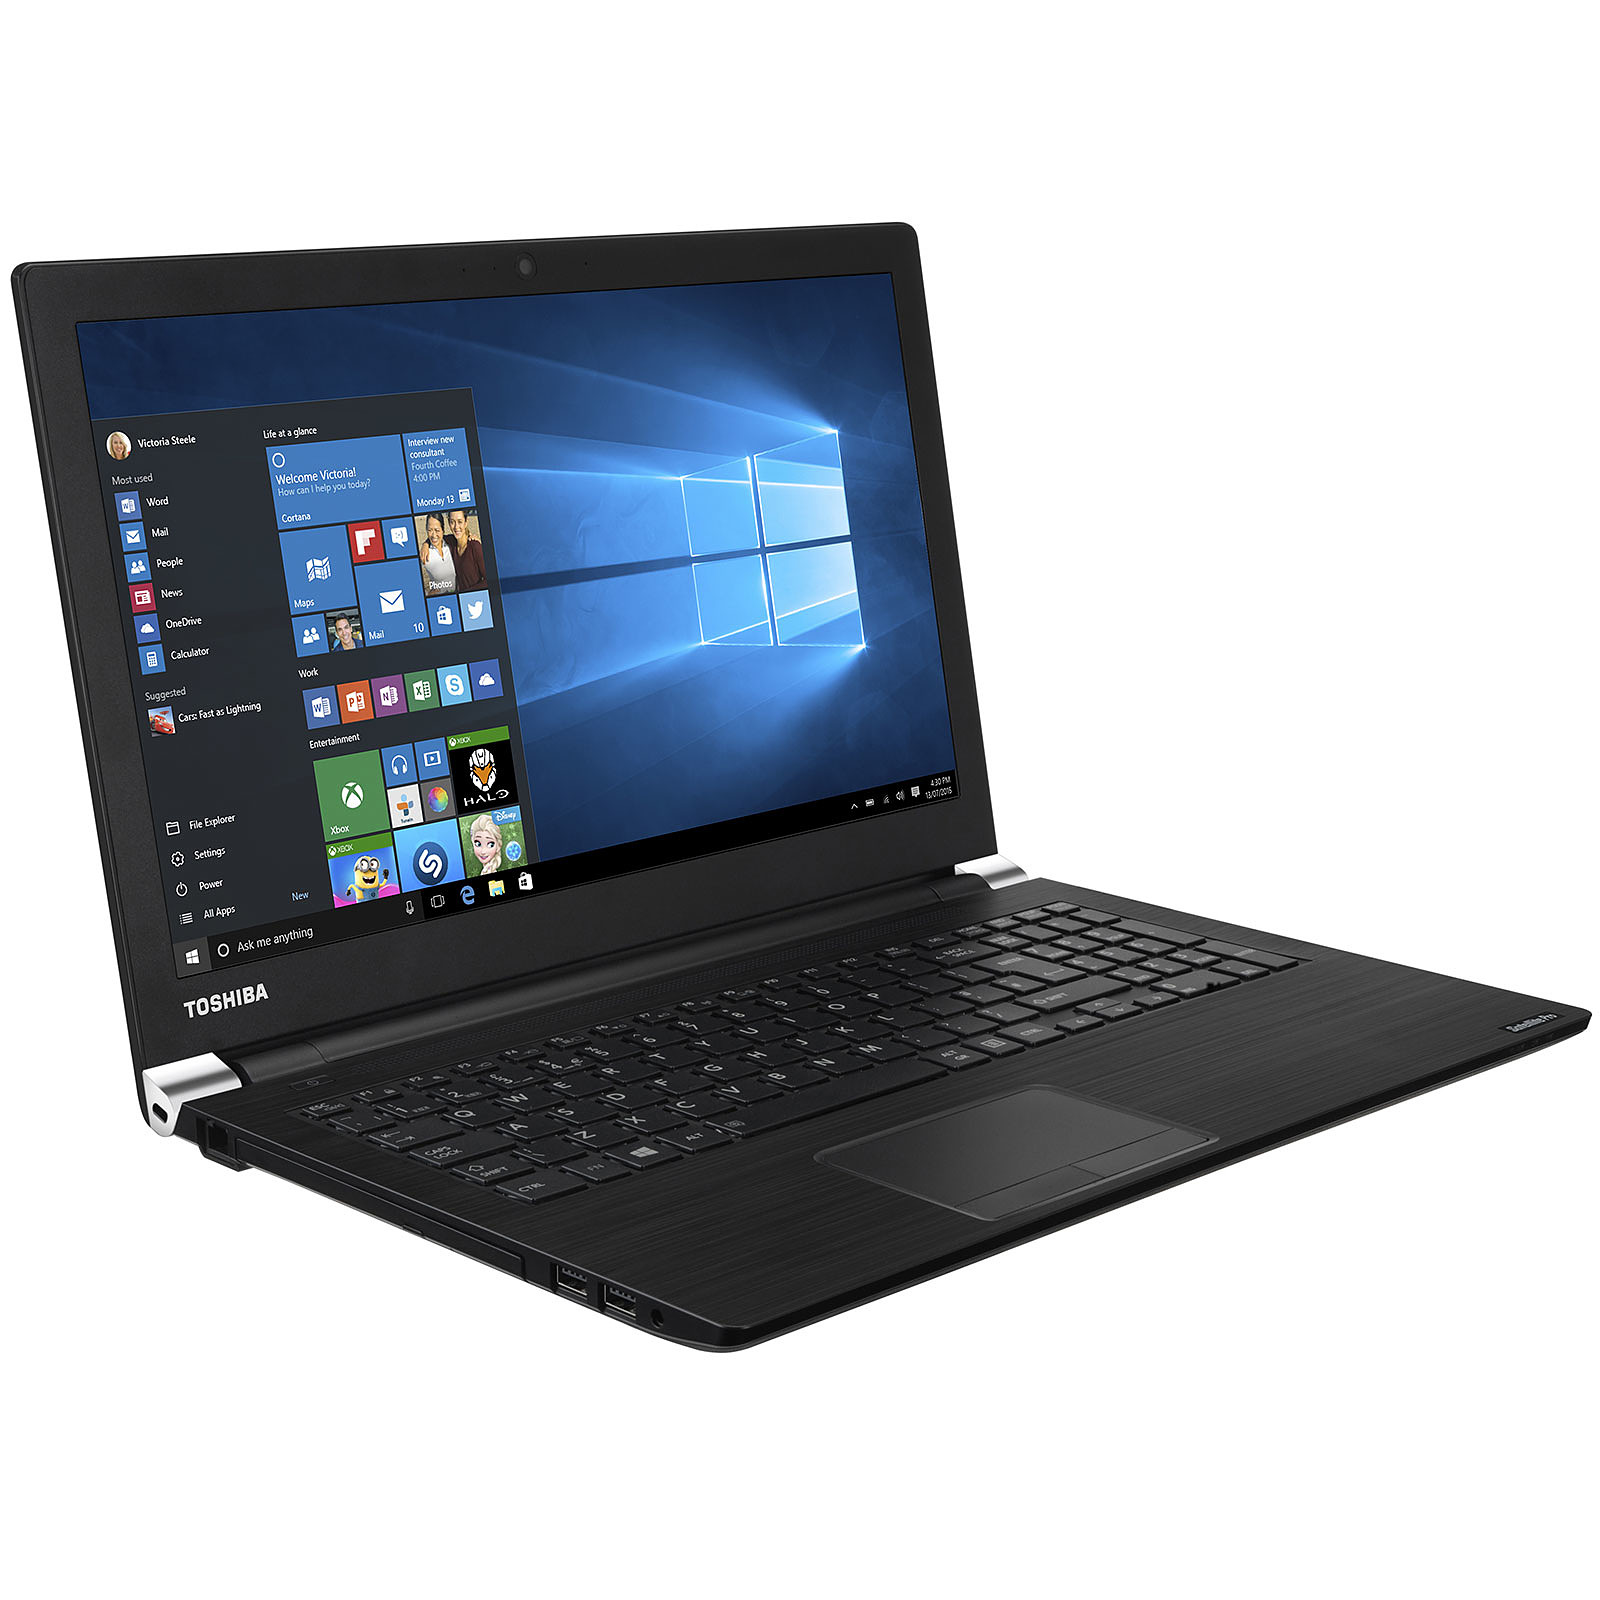 Ordinateur portable Toshiba Satellite PRO, Core i5, SSD 512 Go, 8 Go, 15.6 pouces LED, W10 PRO 64bits, informatique Reunion 974, Futur Réunion informatique